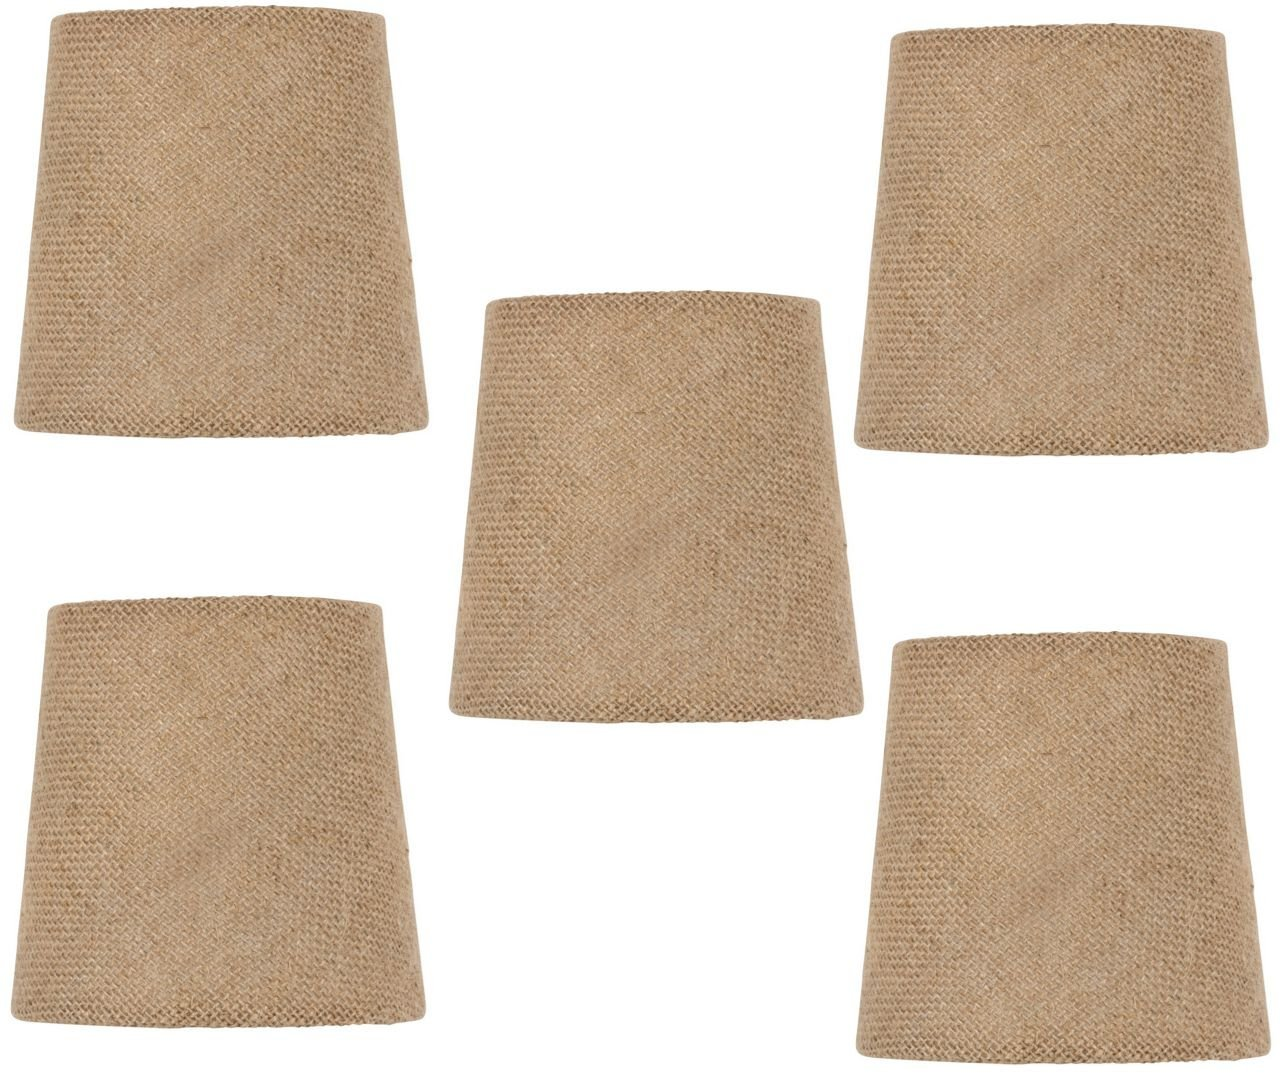 Mini Chandelier Shades Clip On Small Lamp shades set of Five Burlap fabric